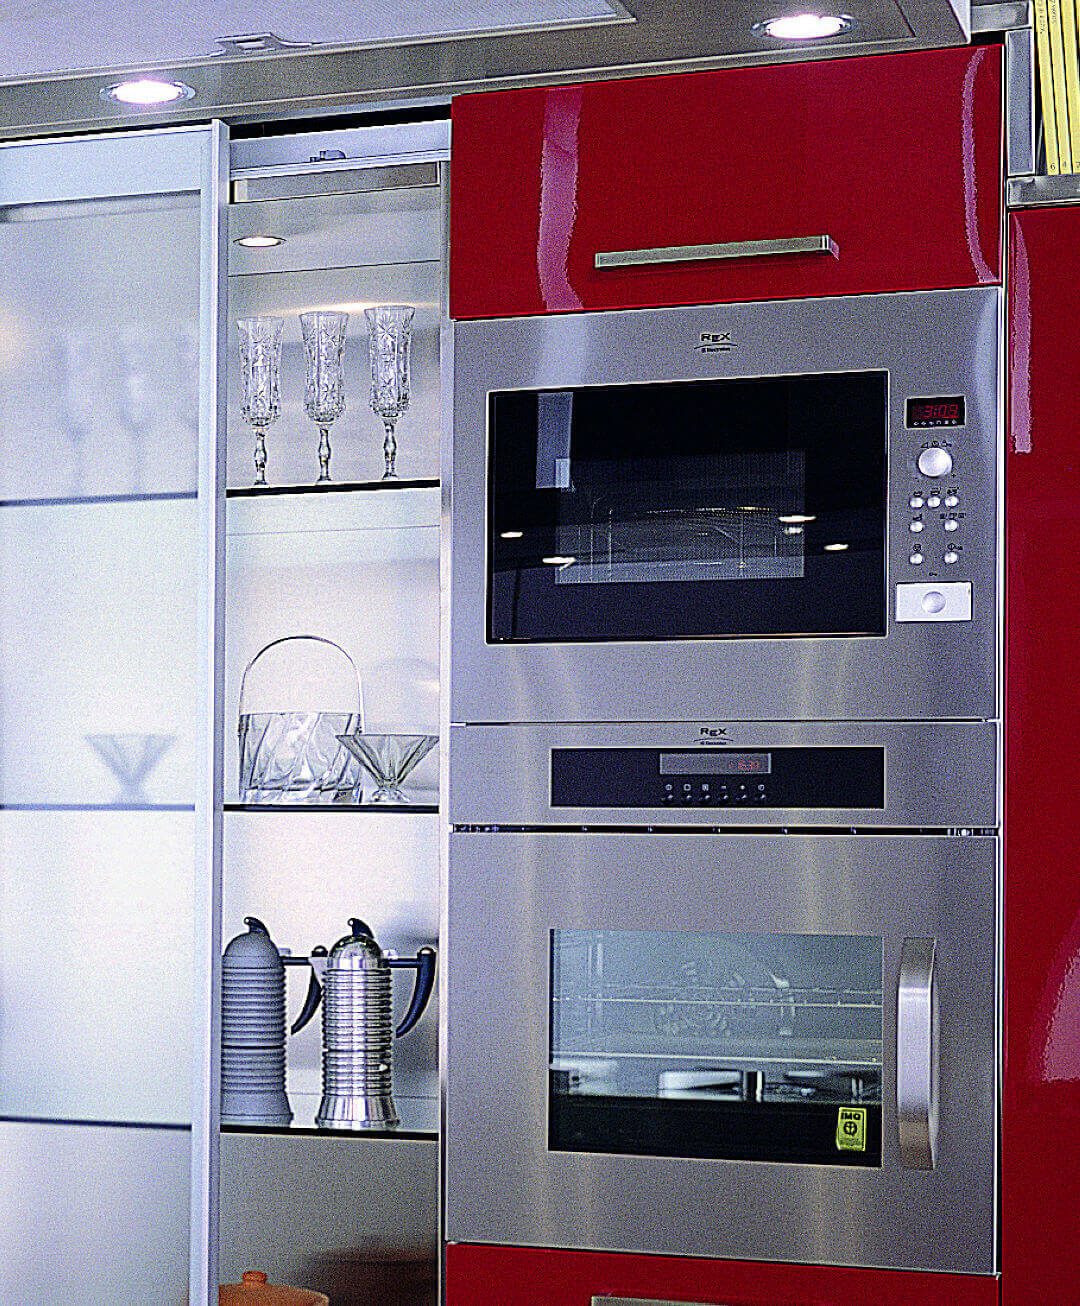 Arca Cucine Italy - Kitchen maid in Stainless Steel and Glass - Opera - Ovens column